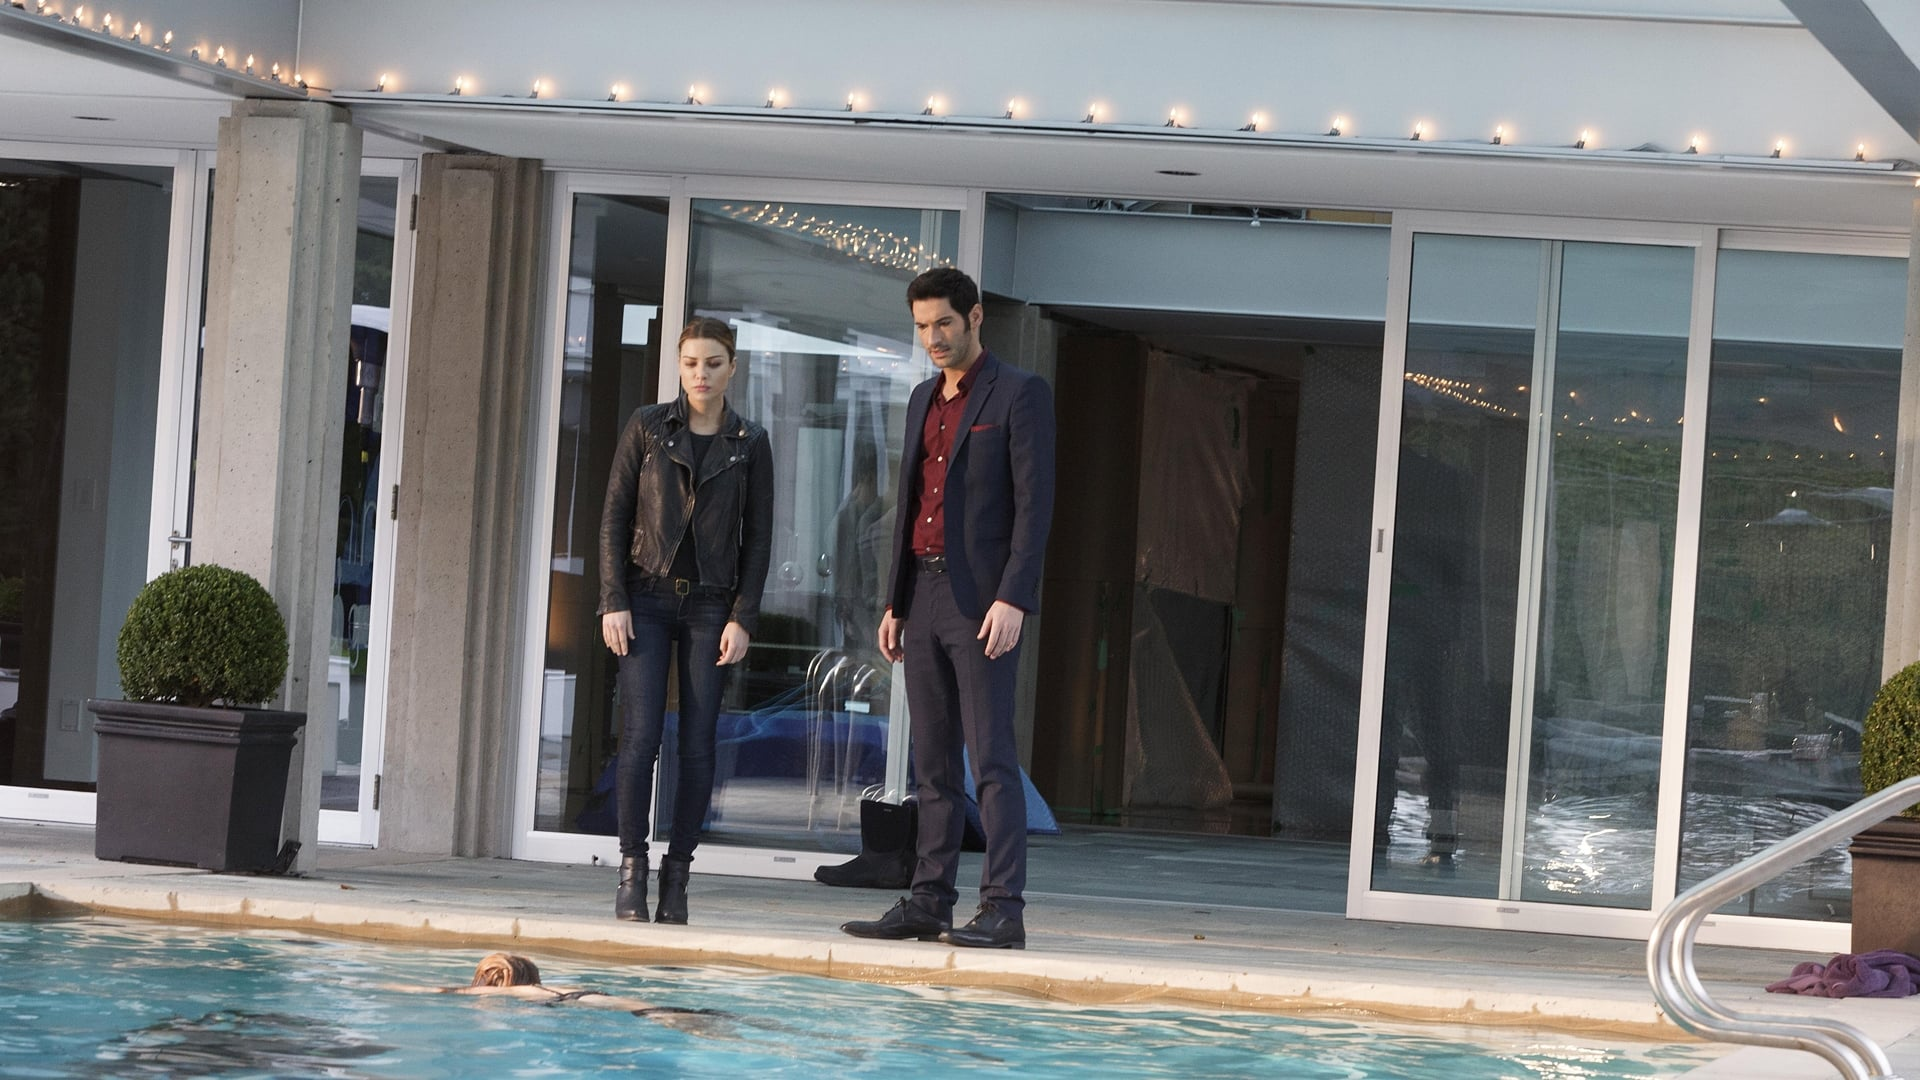 Lucifer - Season 1 Episode 3 : The Would-Be Prince of Darkness